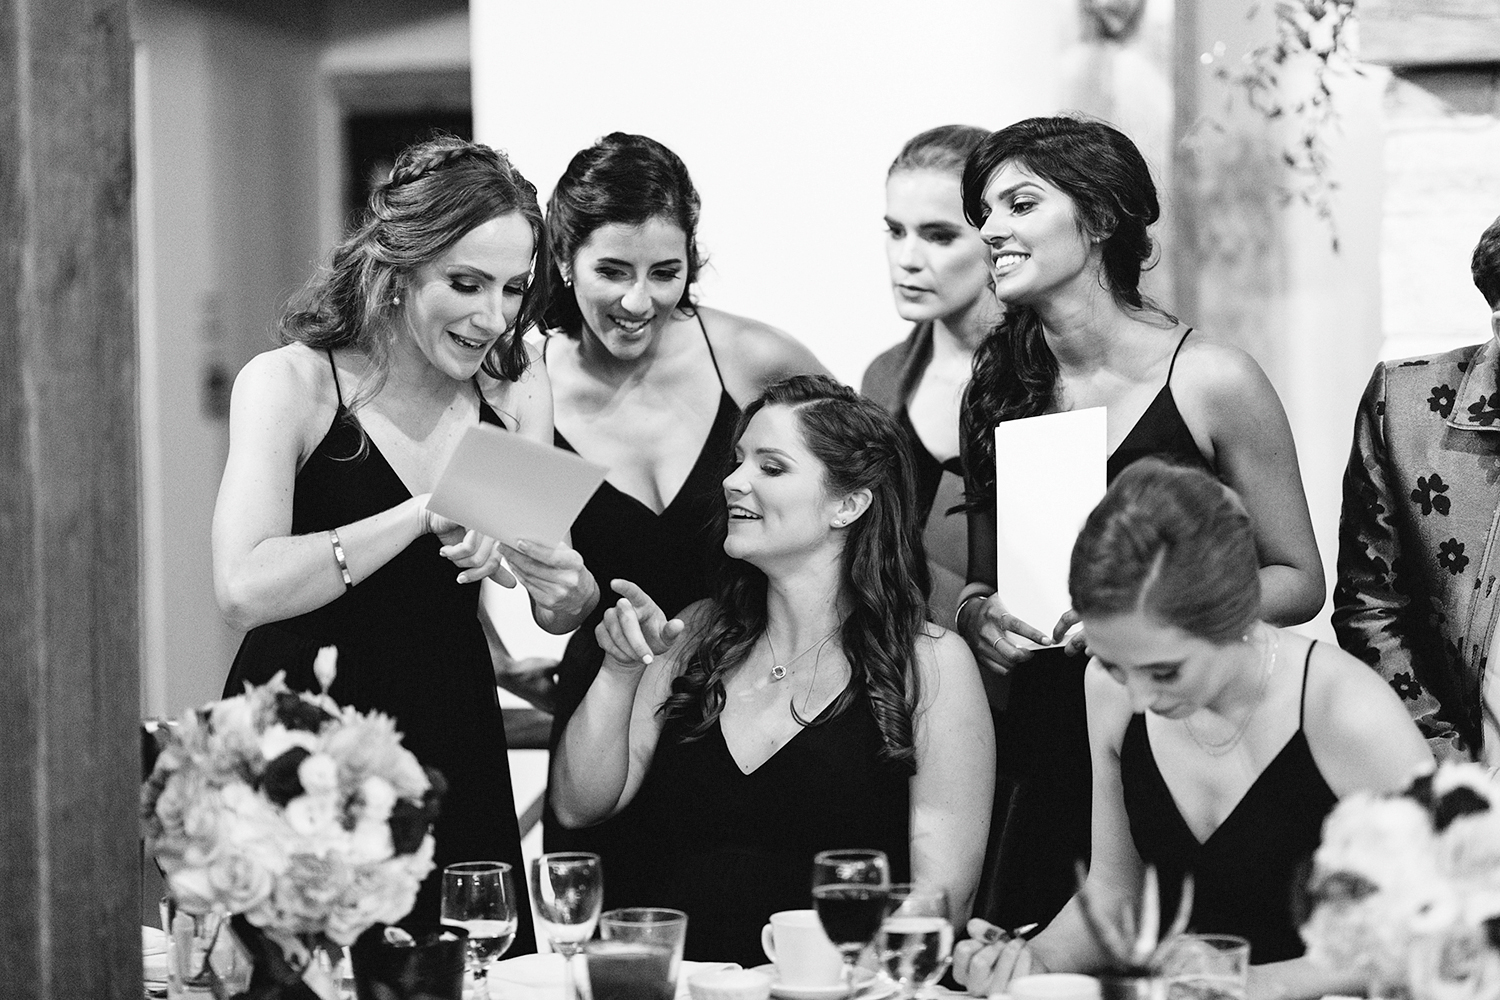 bw-reception-diy-bride-and-groom-speeches-games-bridesmaids-helping-toronto's-best-analog-documentary-wedding-photographers-candid-photography-london-ontario-wedding-inspiration.jpg